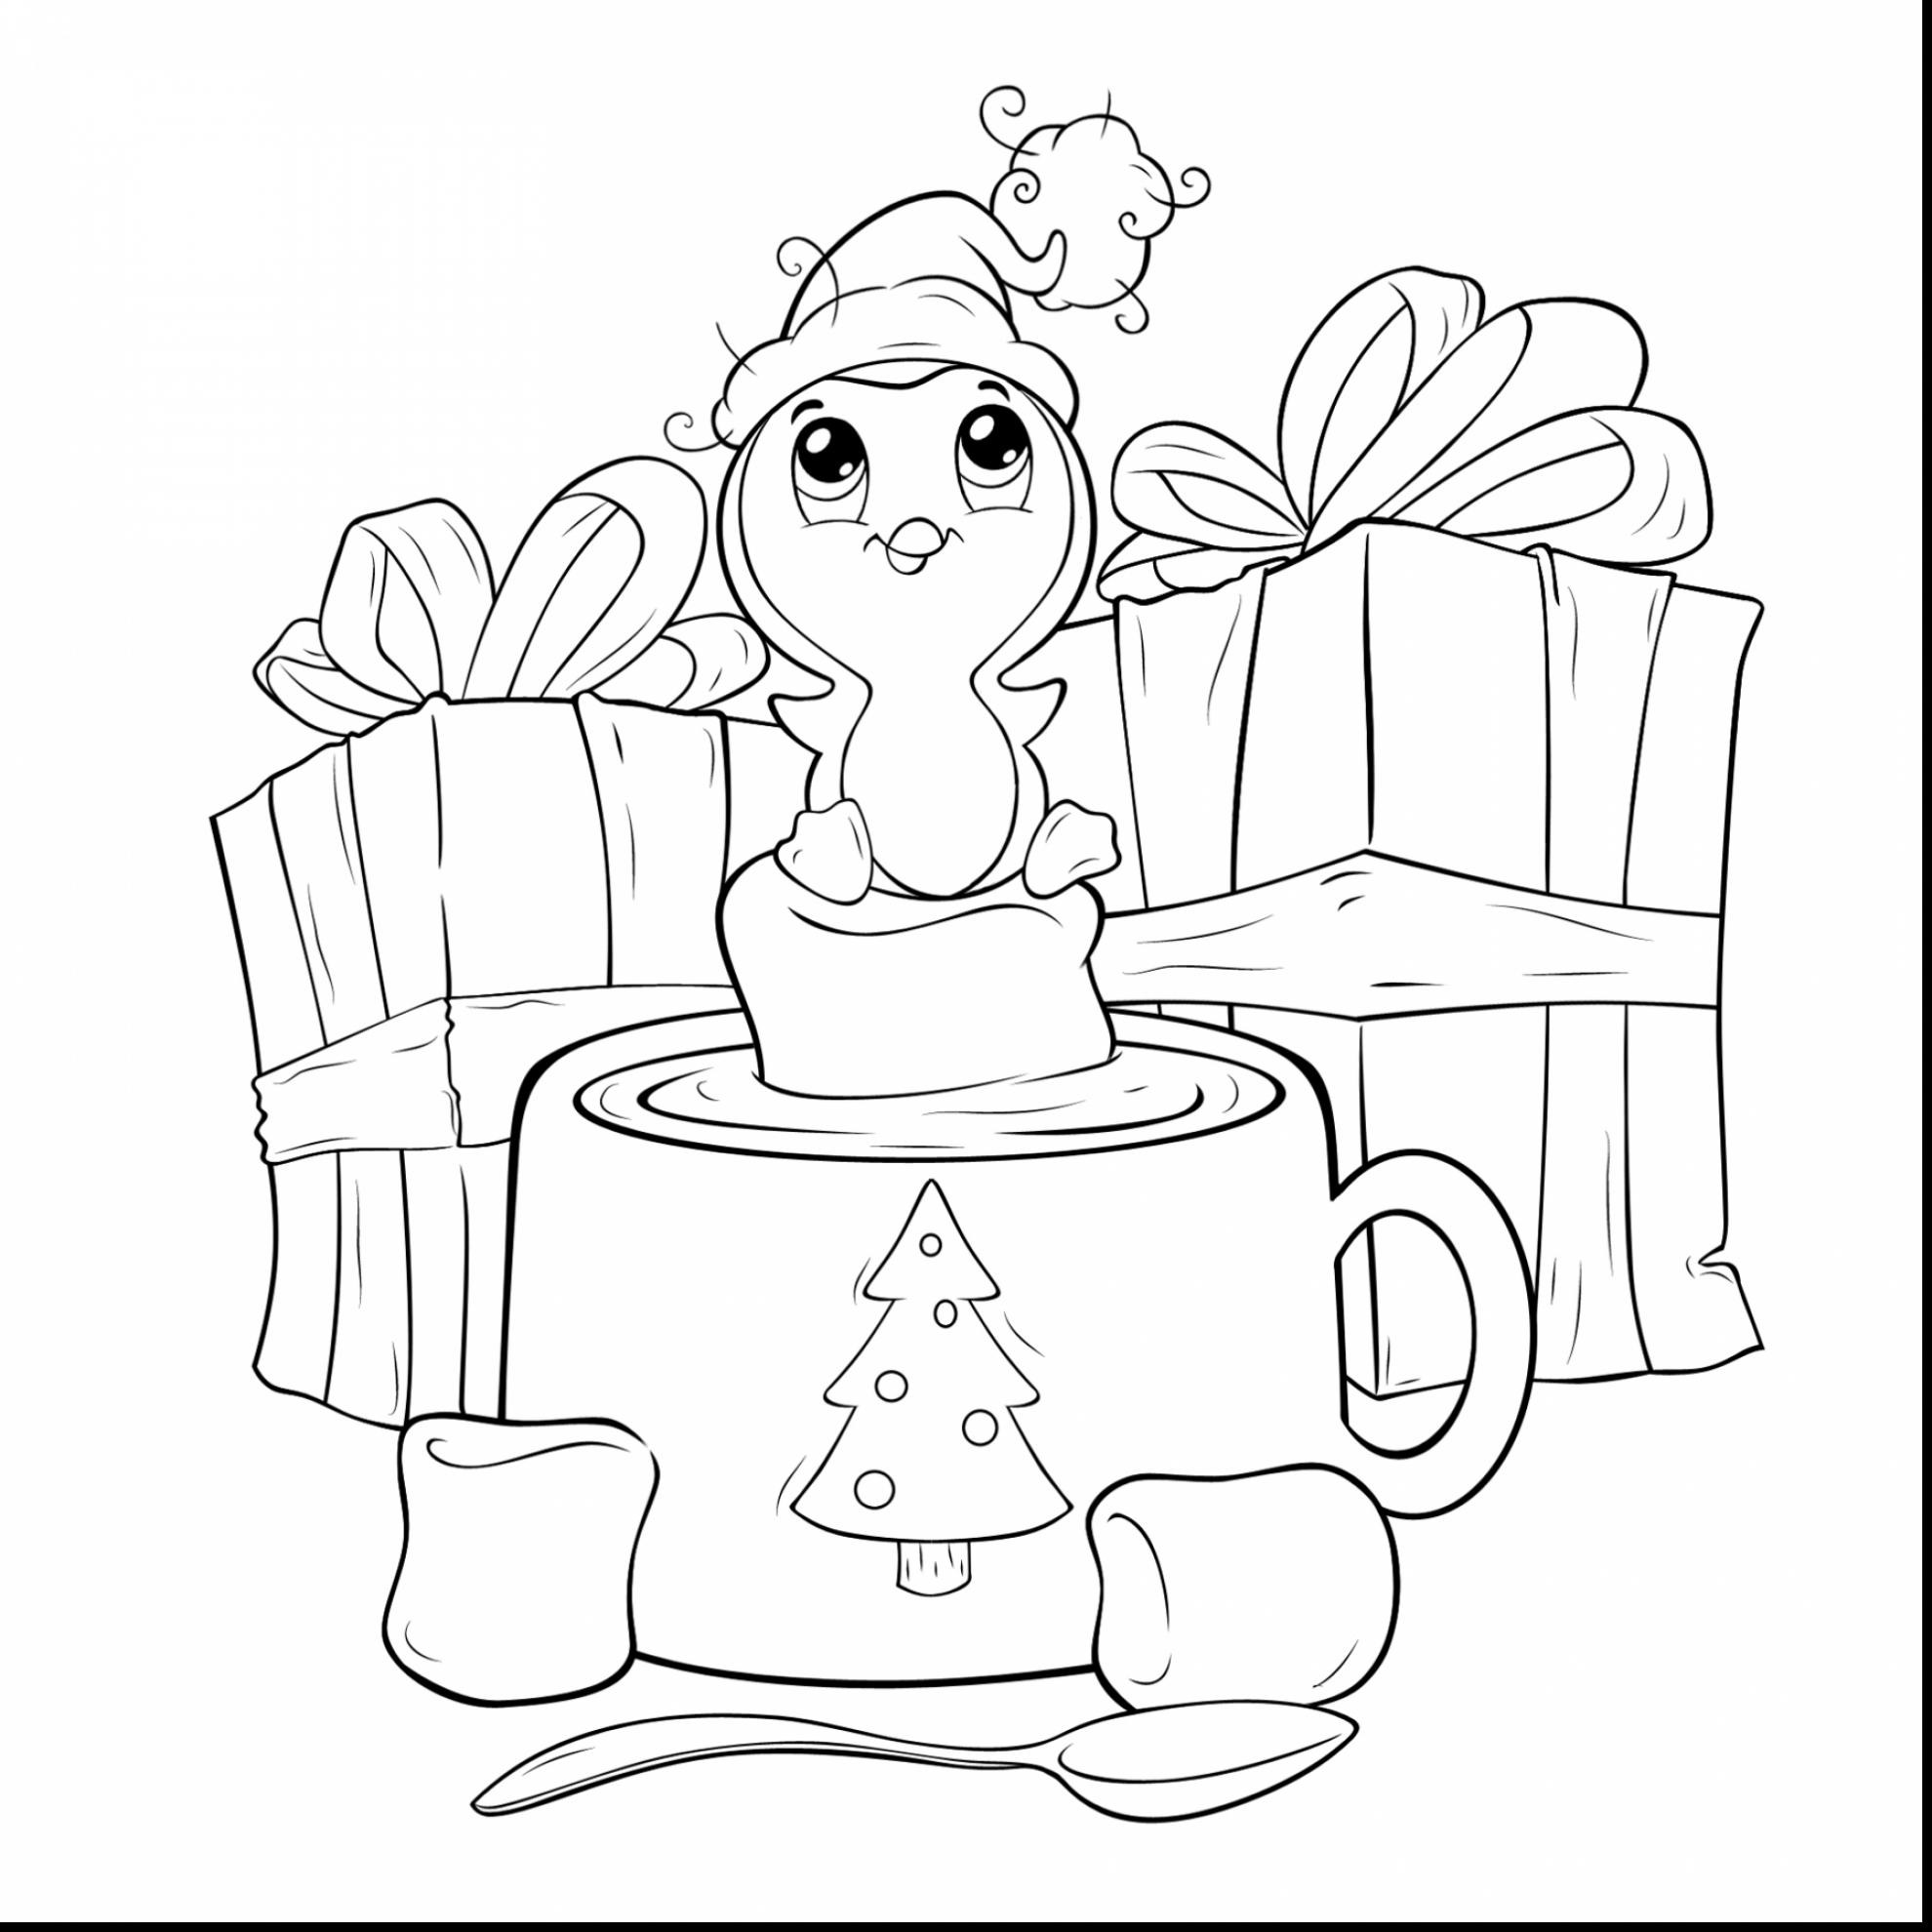 Advent Wreath Coloring Pages Printable At Getcolorings